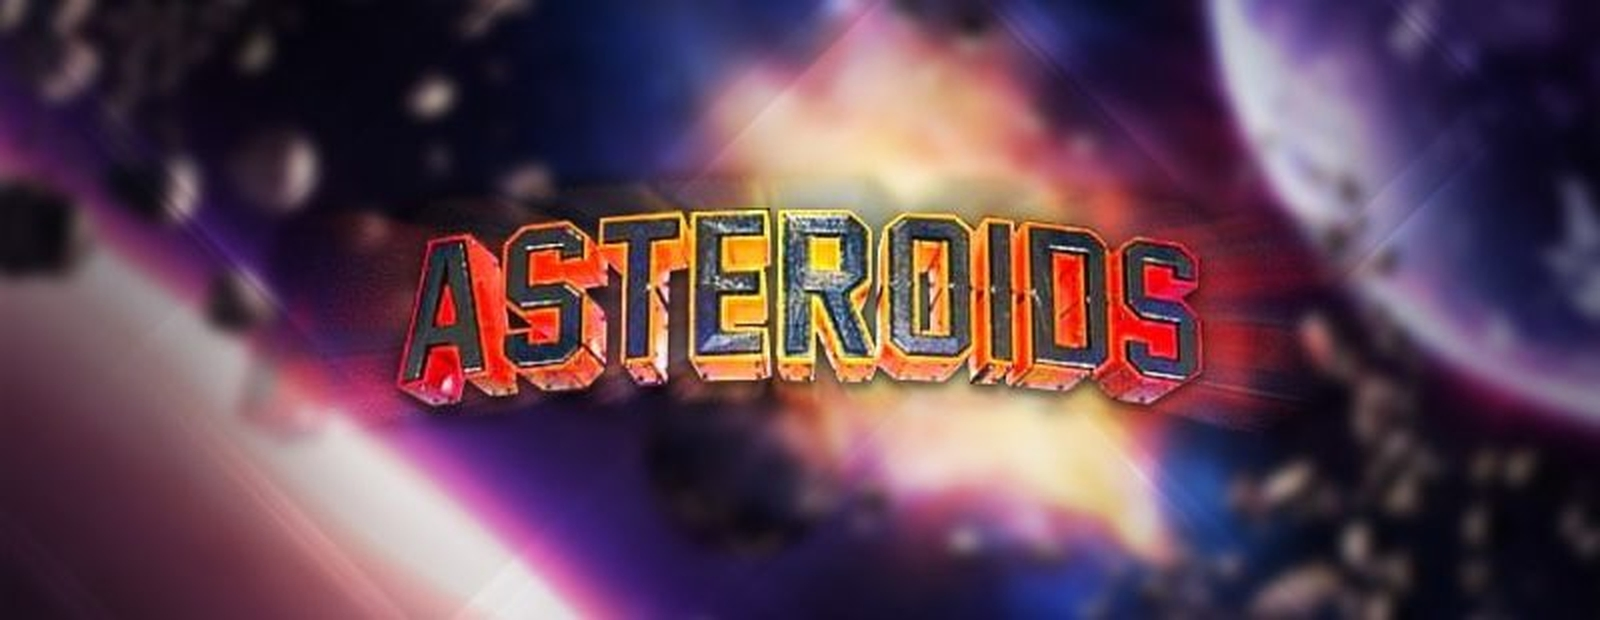 The Asteroids Scratch Online Slot Demo Game by PariPlay